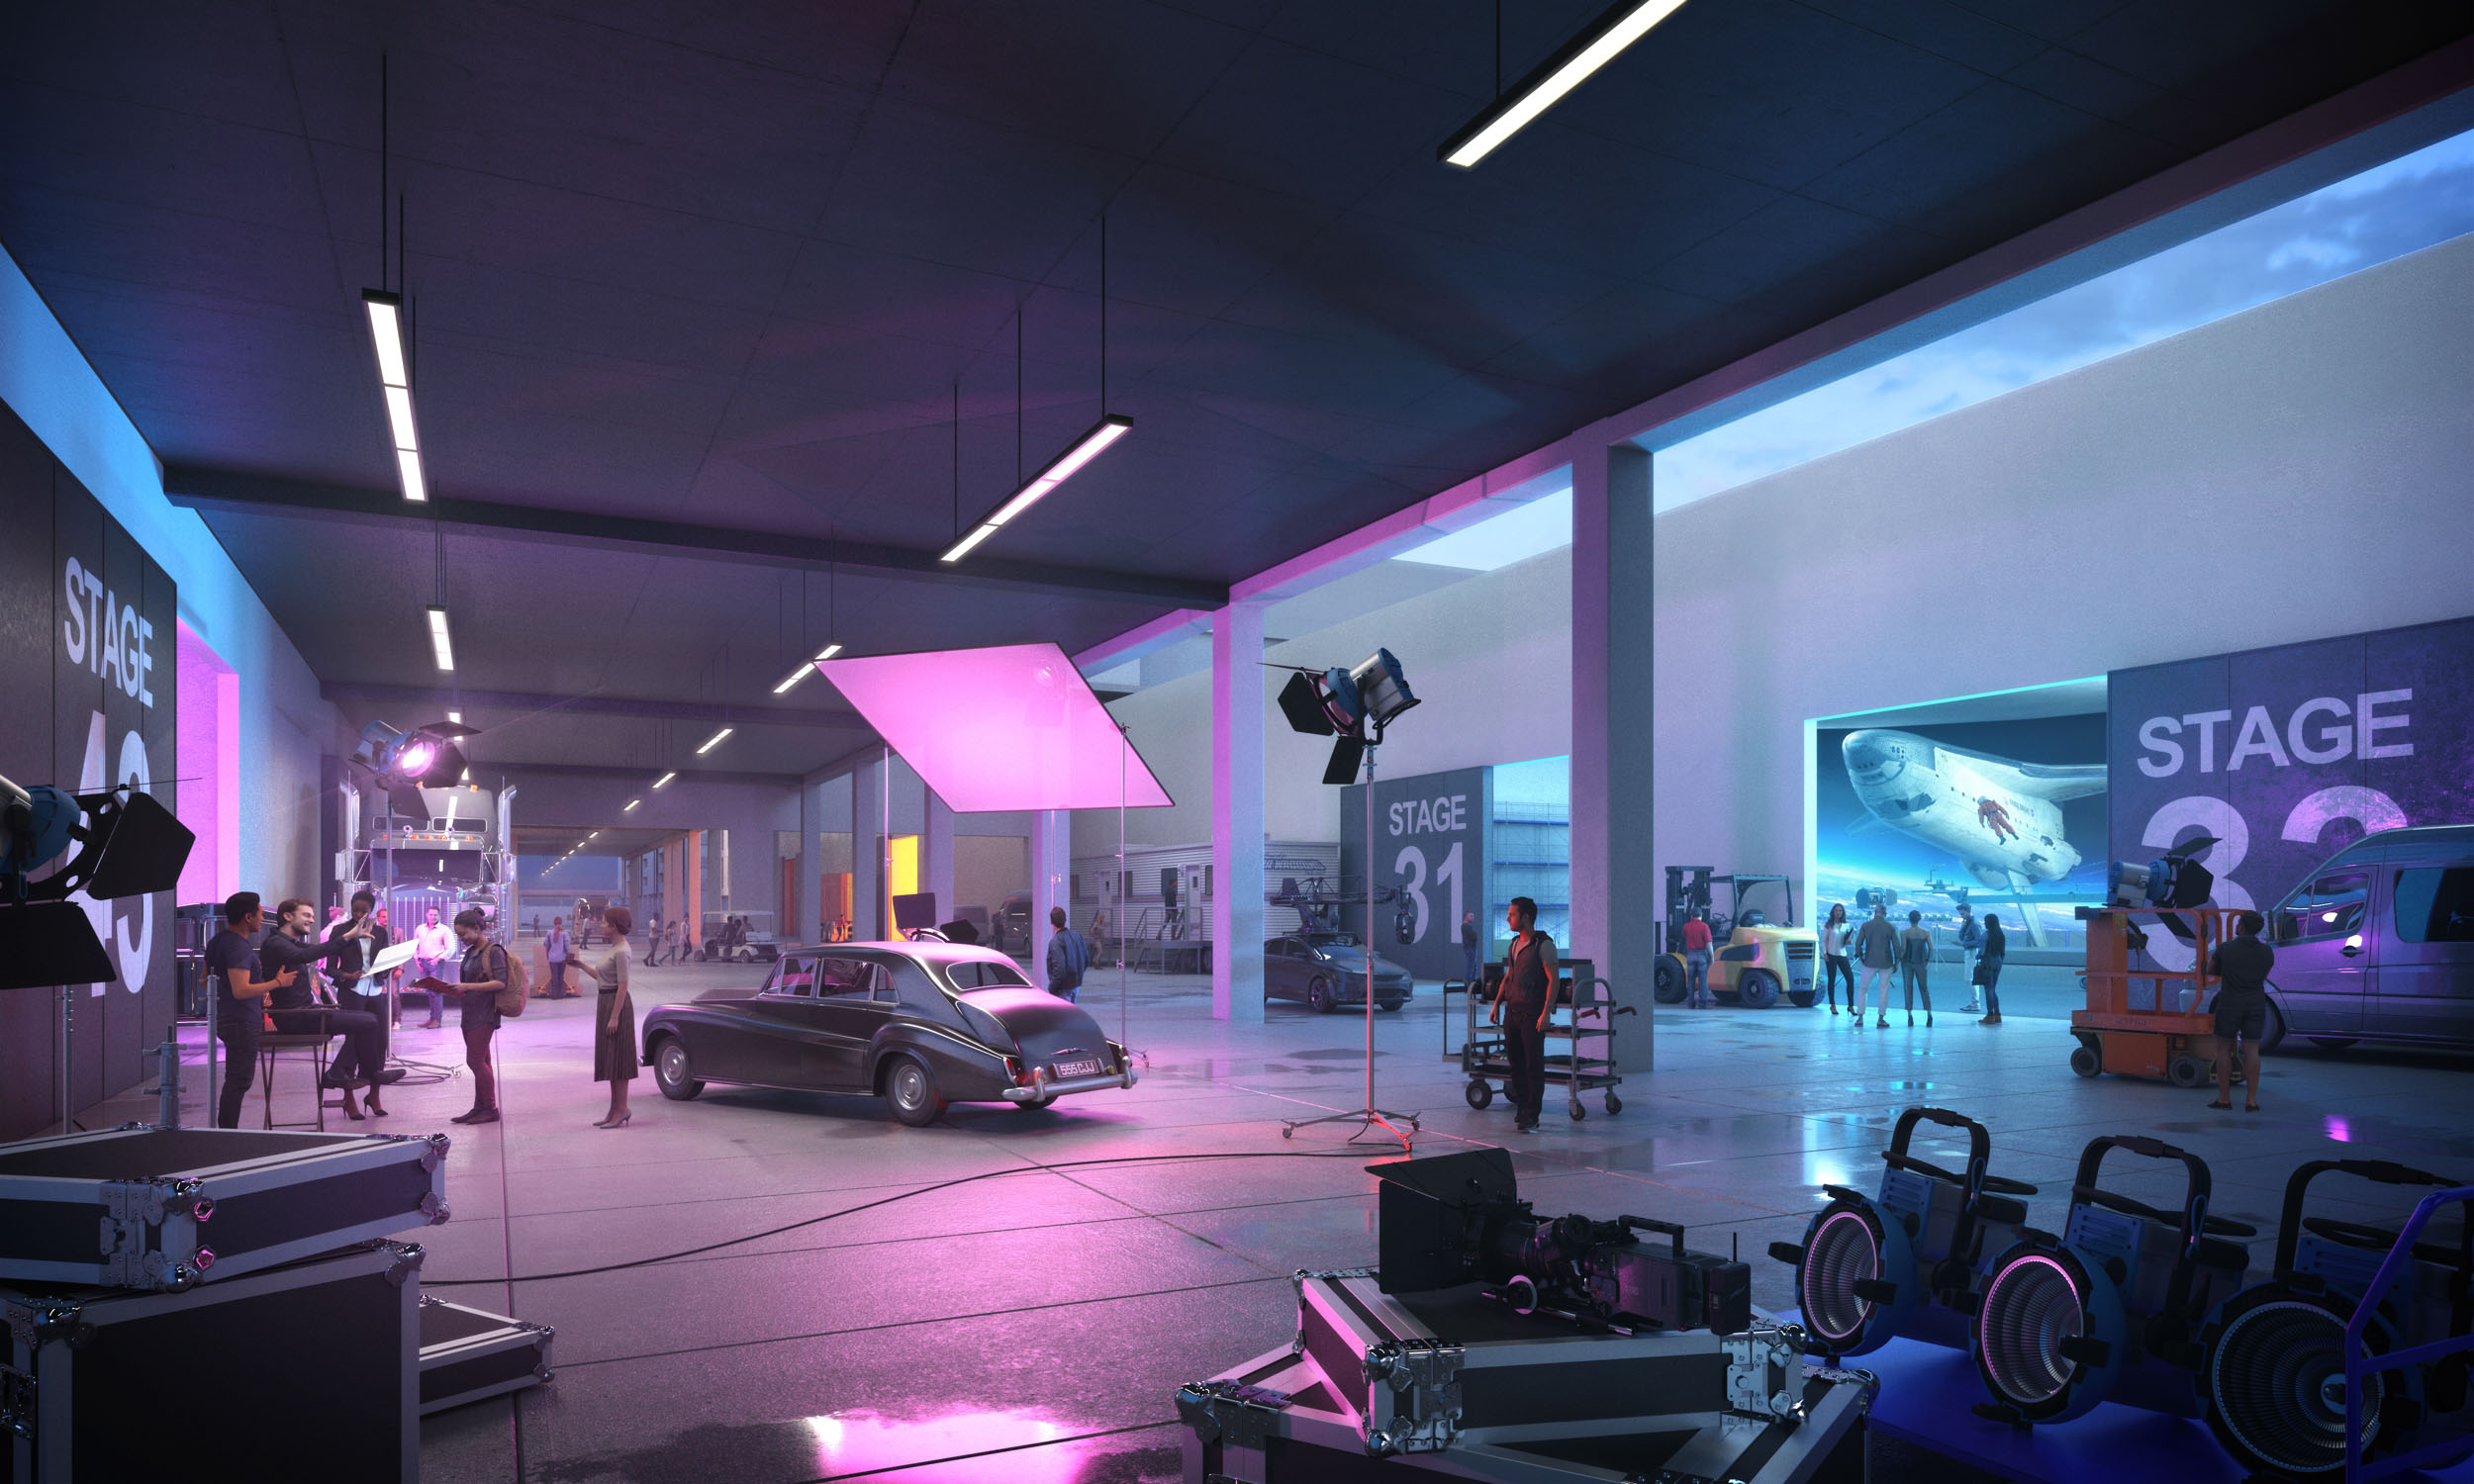 Inside a production studio at the proposed Television City 2050 with multiple soundstages, lighting, and production equipment